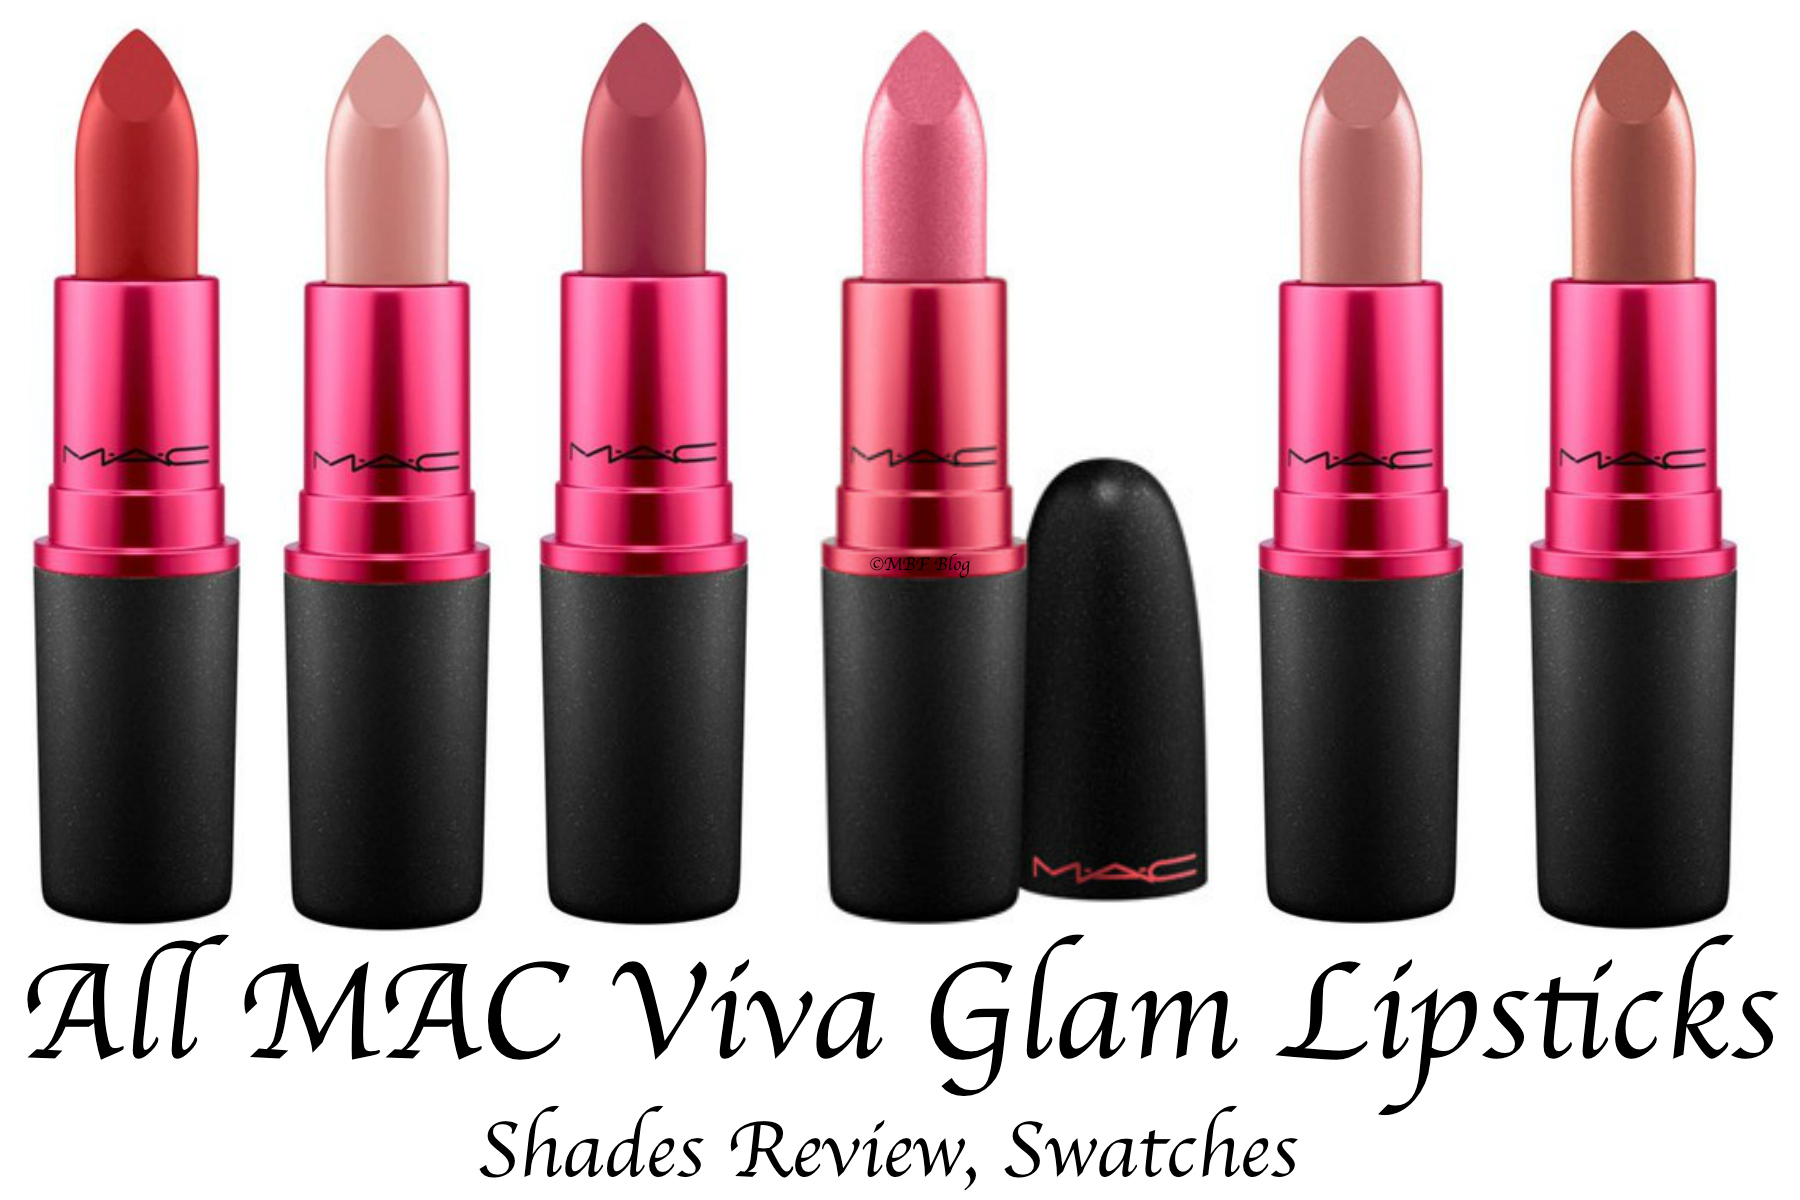 All Mac Viva Glam Lipsticks Shades Review Swatches